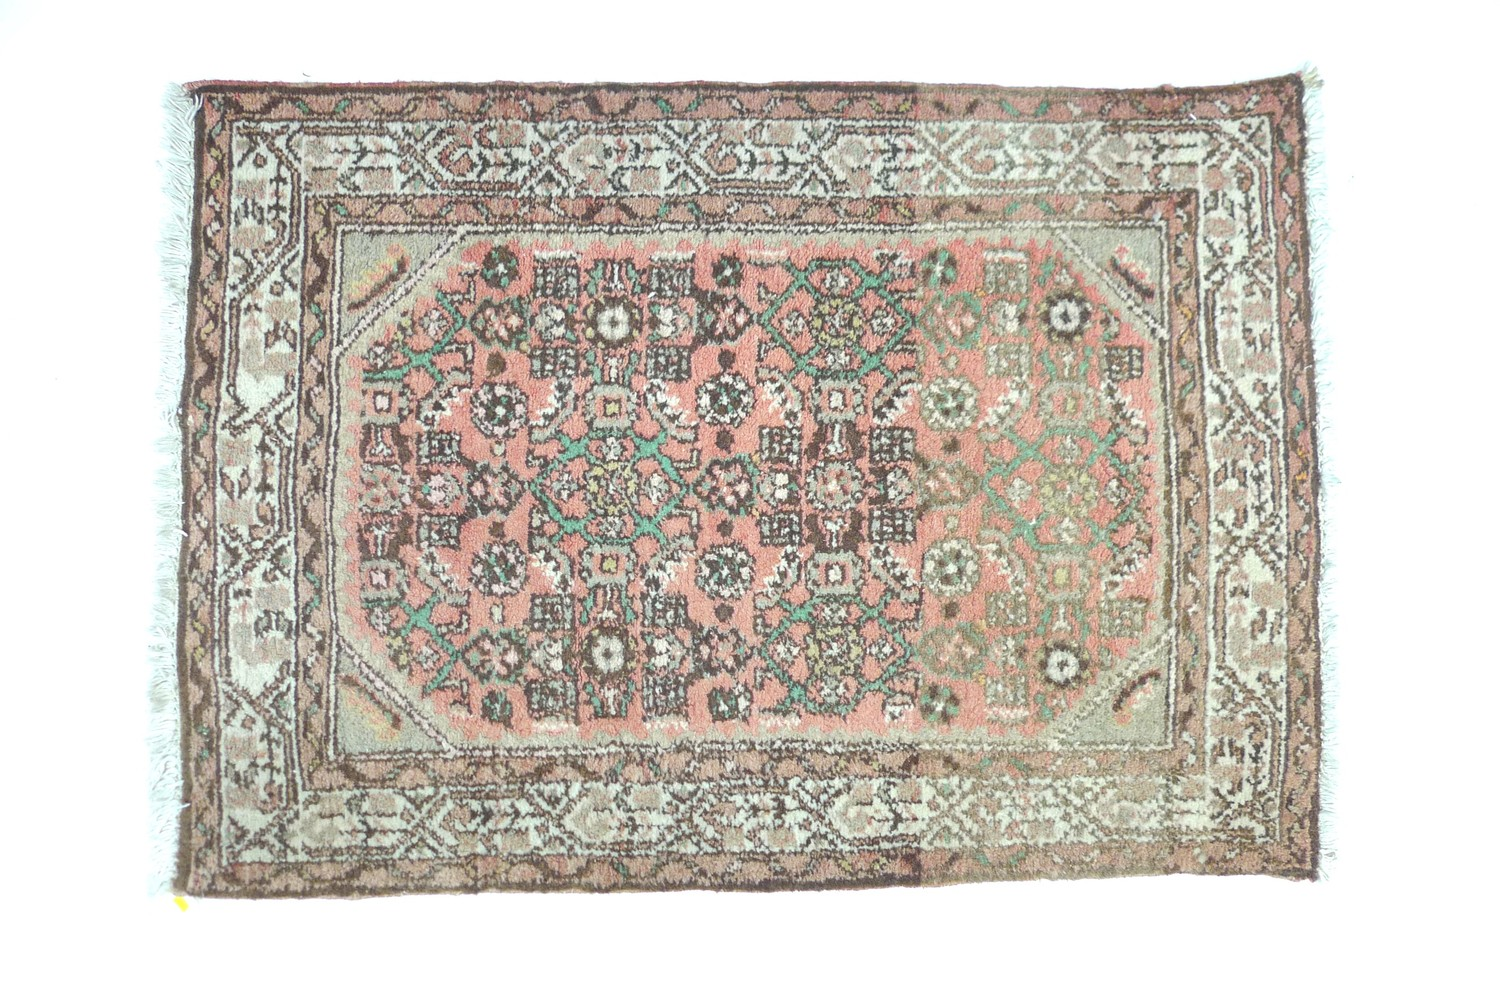 A small Persian prayer rug, with pale red ground, 120 by 85cm.